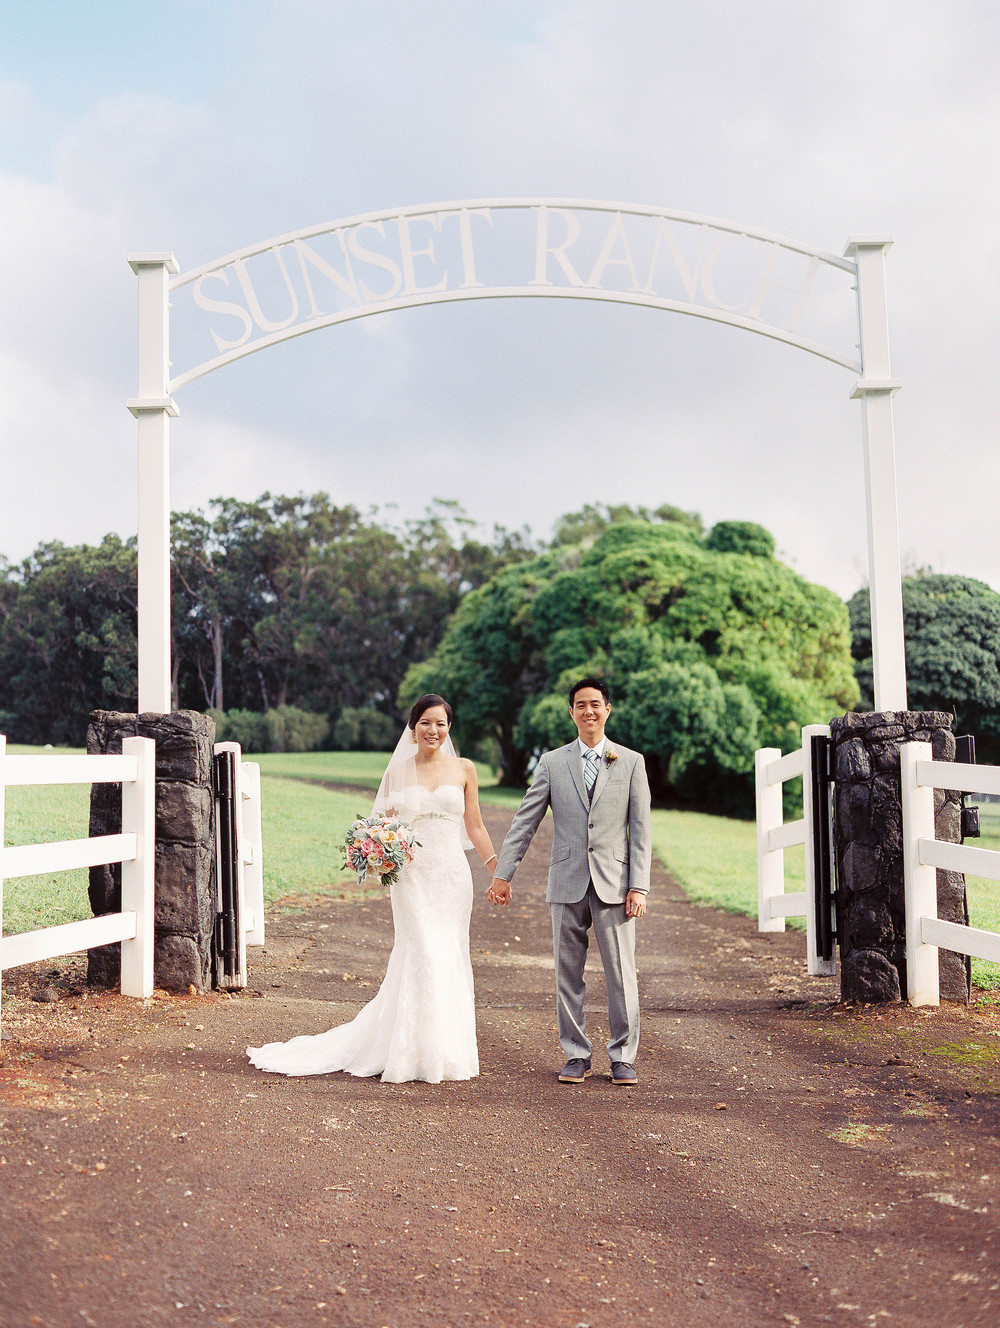 [Married]Kari+Shaun-158.jpg